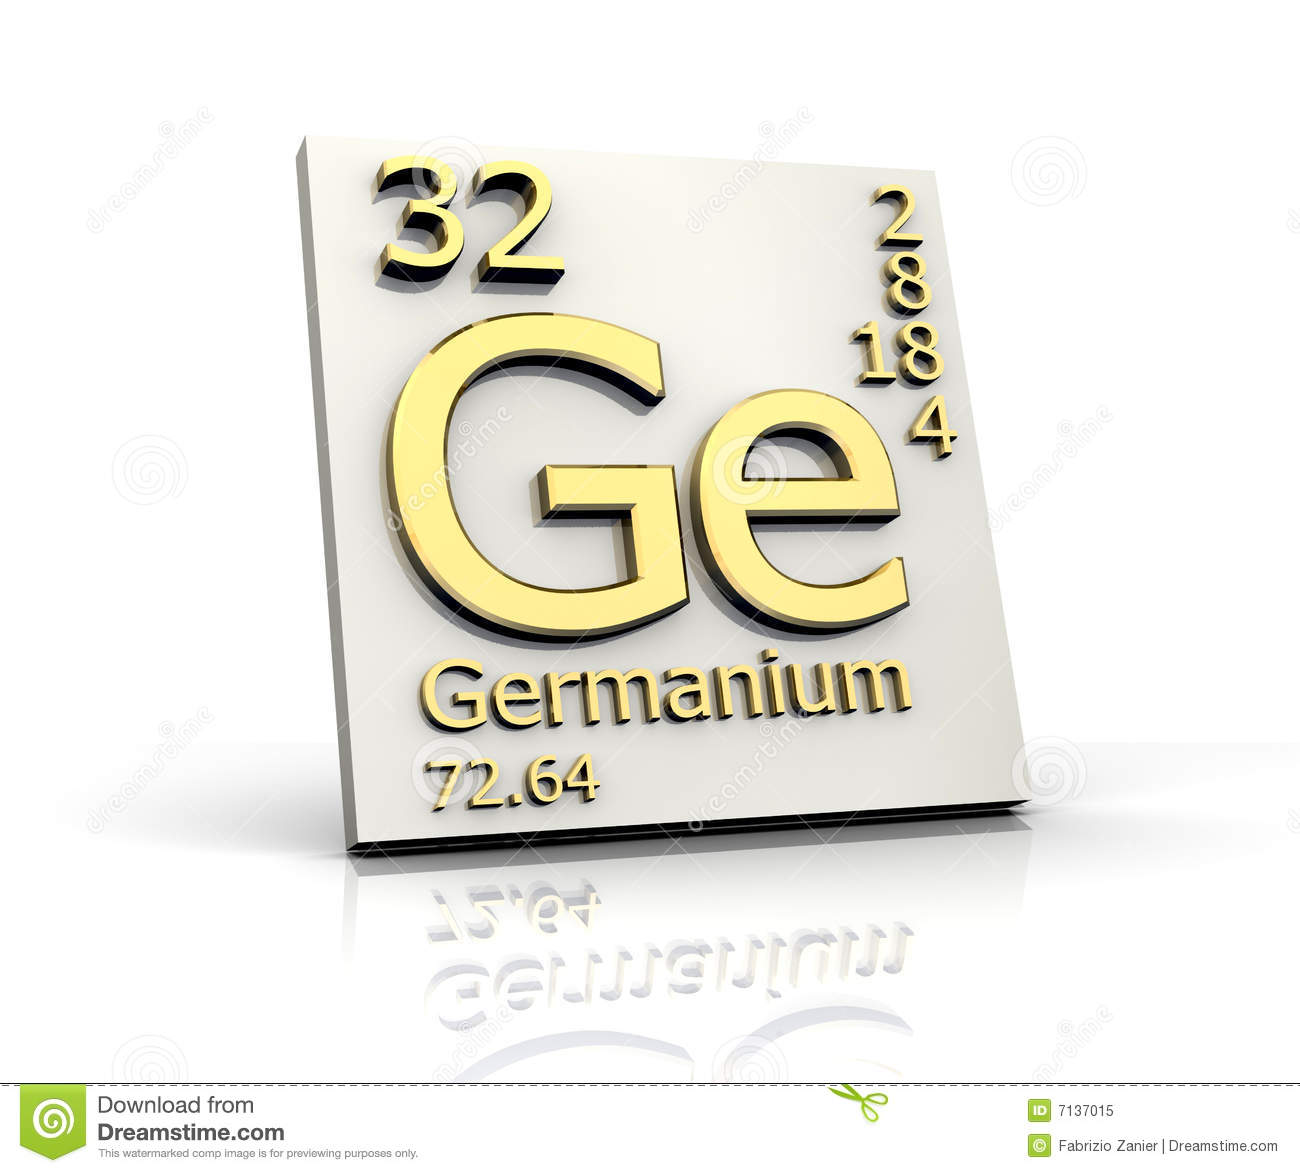 Germanium cartoons illustrations vector stock images for Periodic table at 85